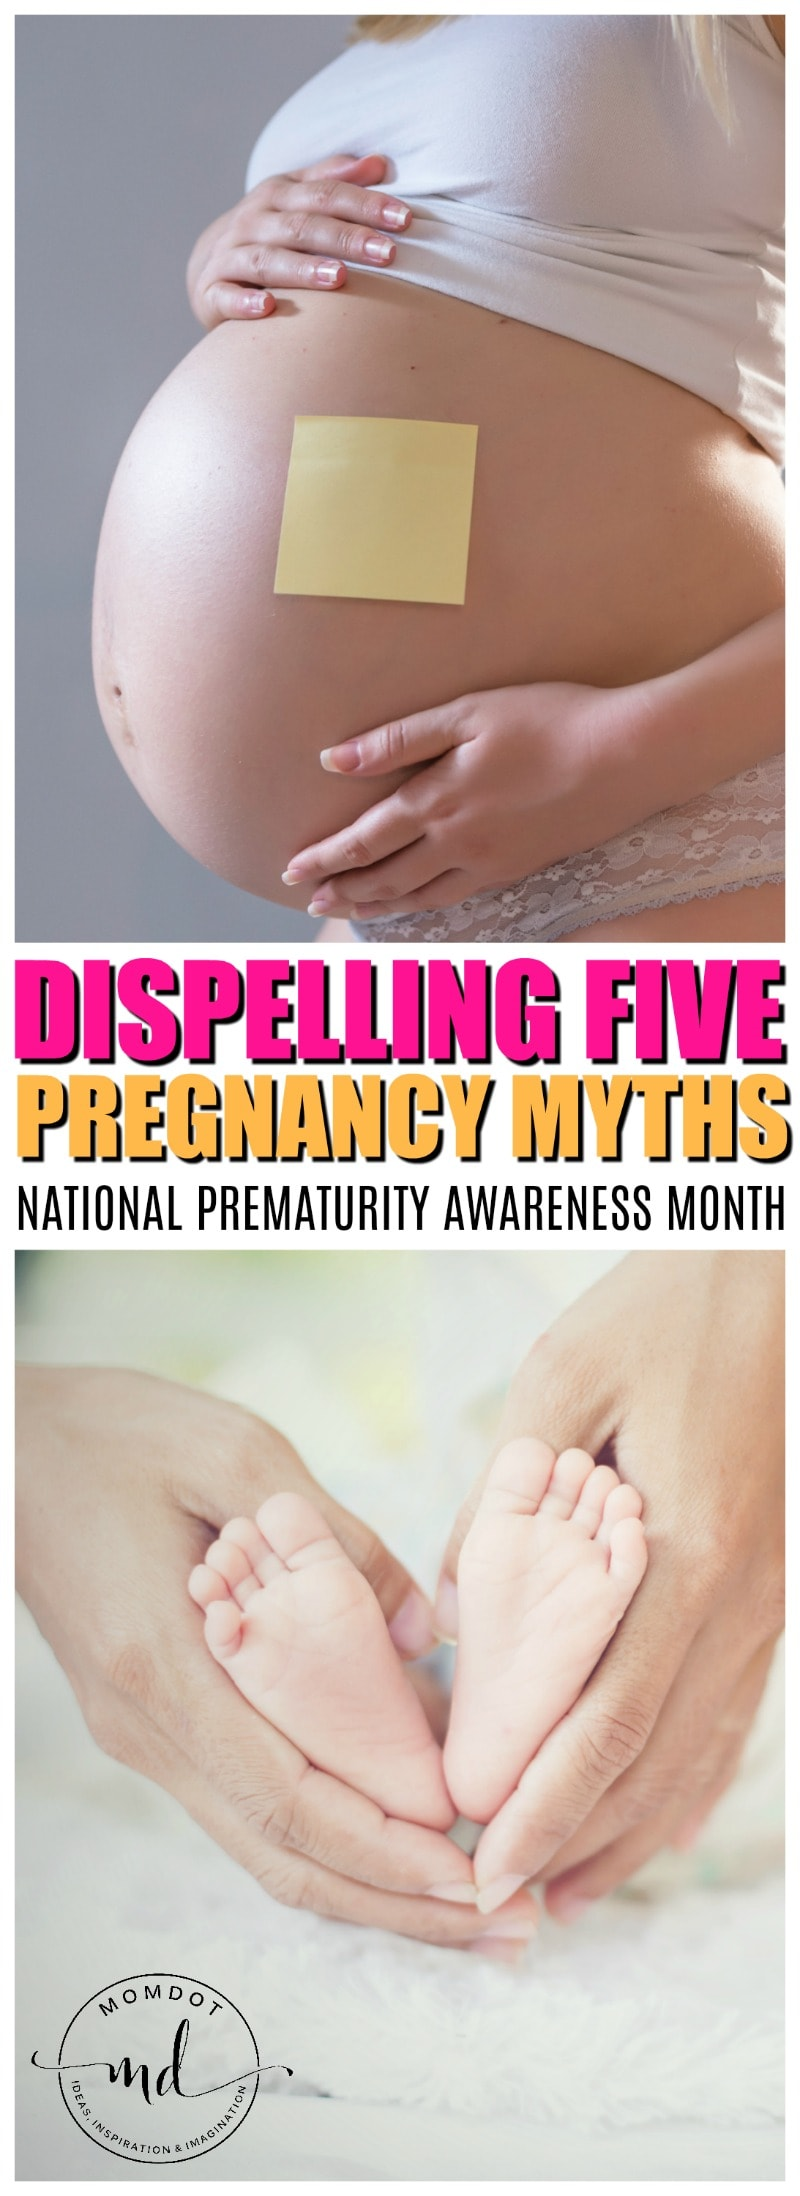 Premature Awareness Month : Dispelling 5 Pregnancy Myths